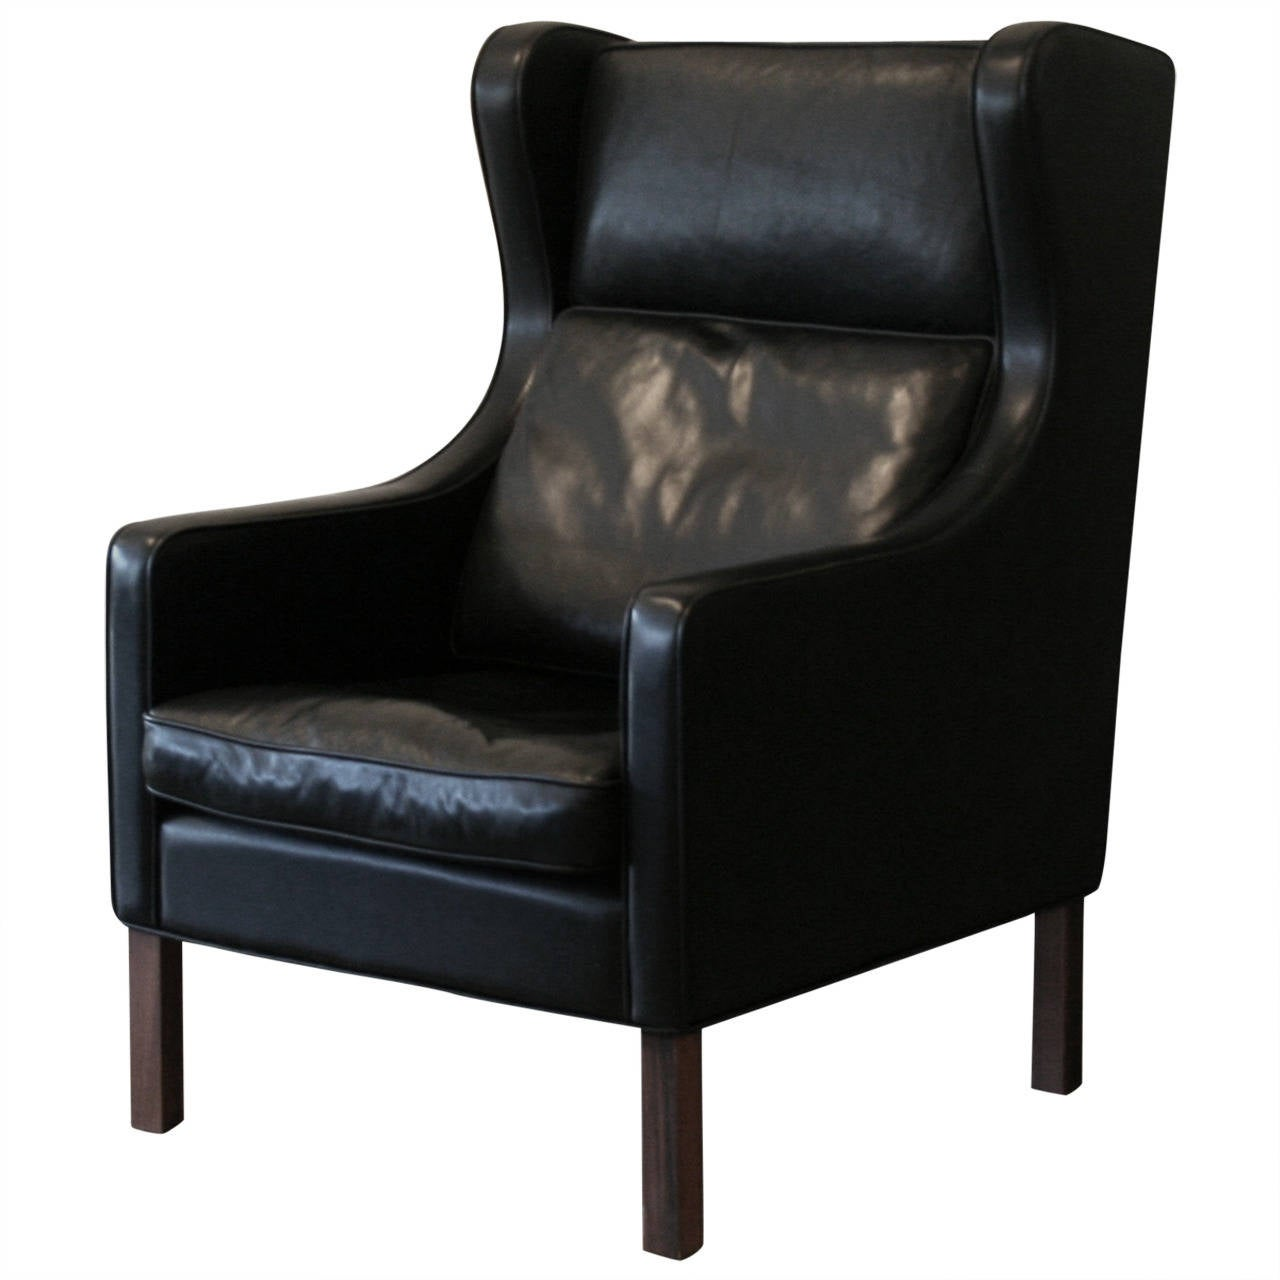 leather wingback chairs reclining patio vintage danish black chair at 1stdibs